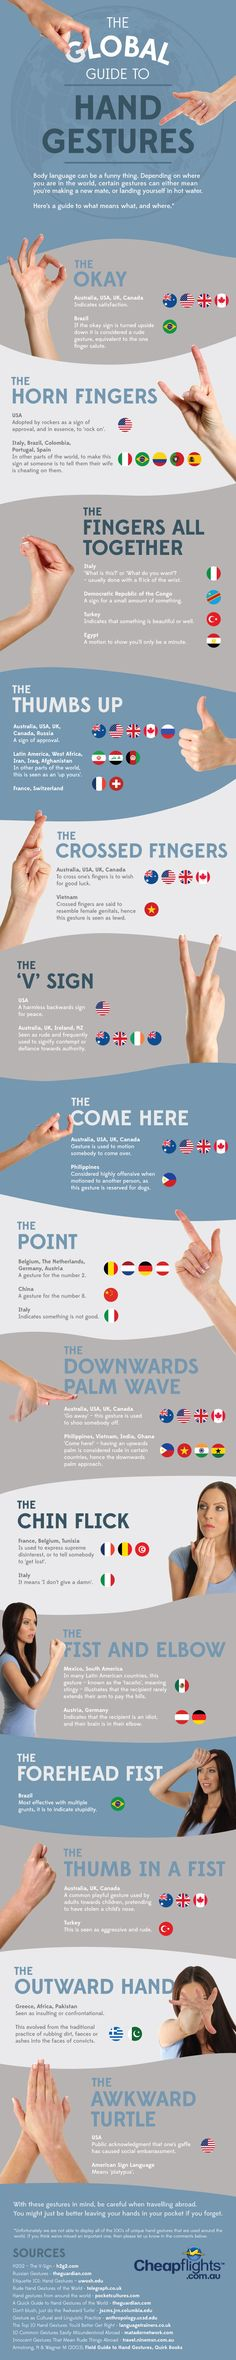 The Global Guide to Hand Gestures